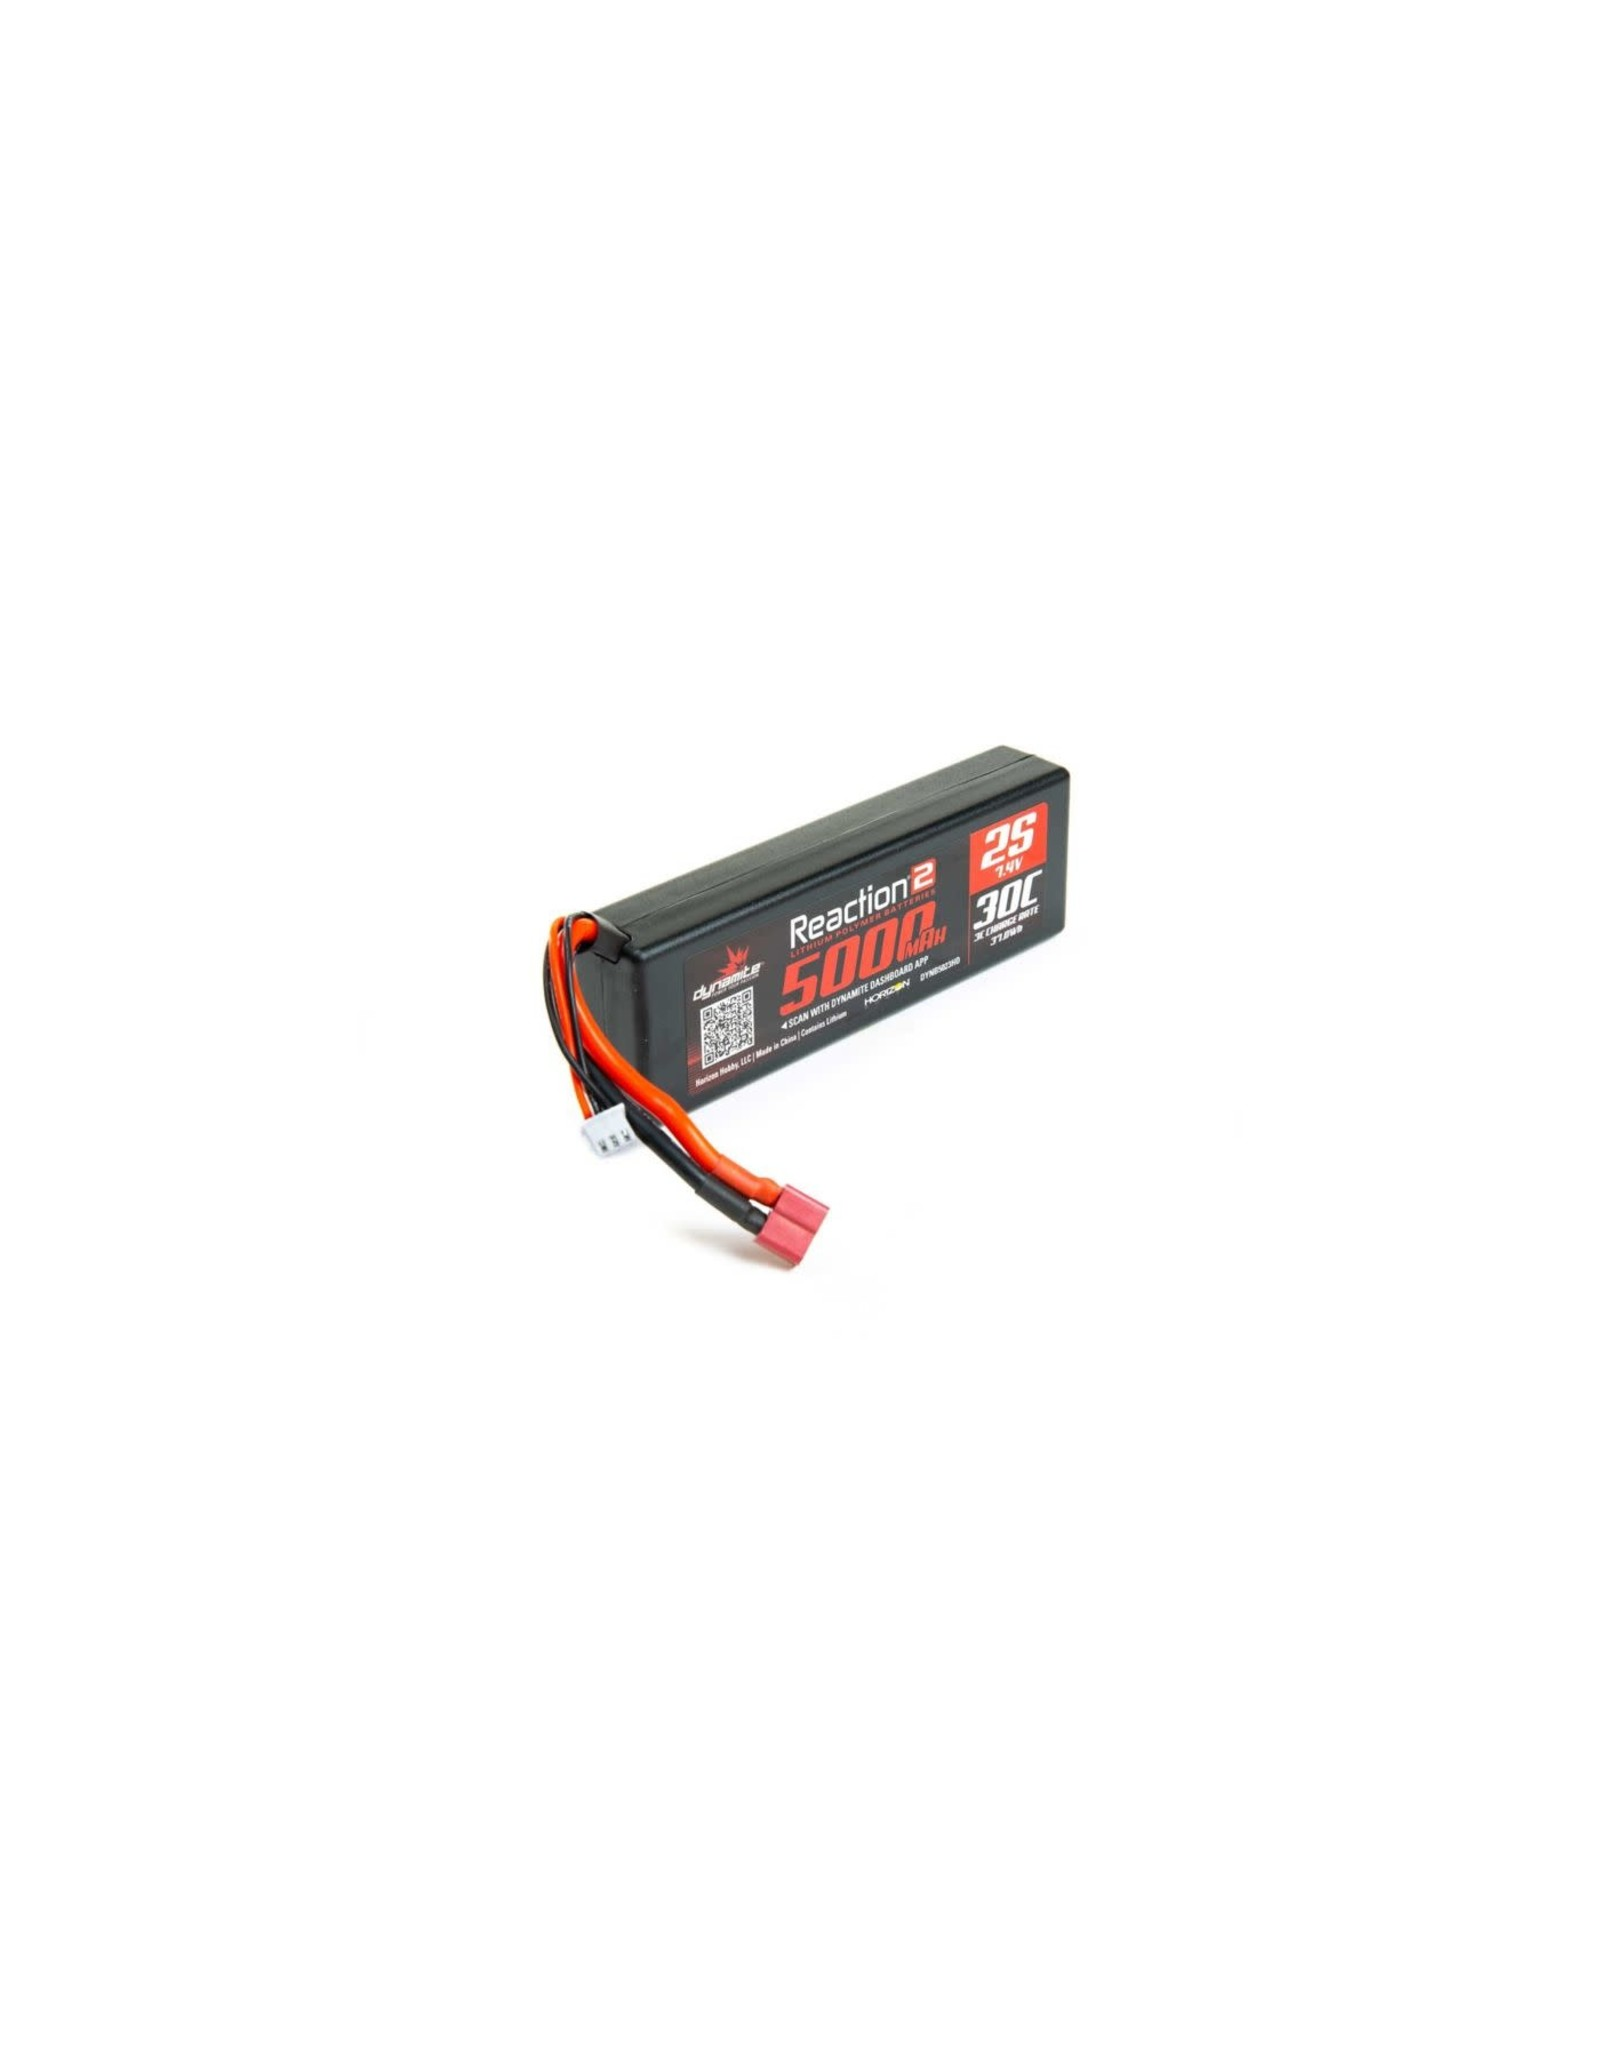 Dynamite Reaction 2 7.4V 5000mah 2S 30C Lipo Hrdcs Deans DYNB5023HD